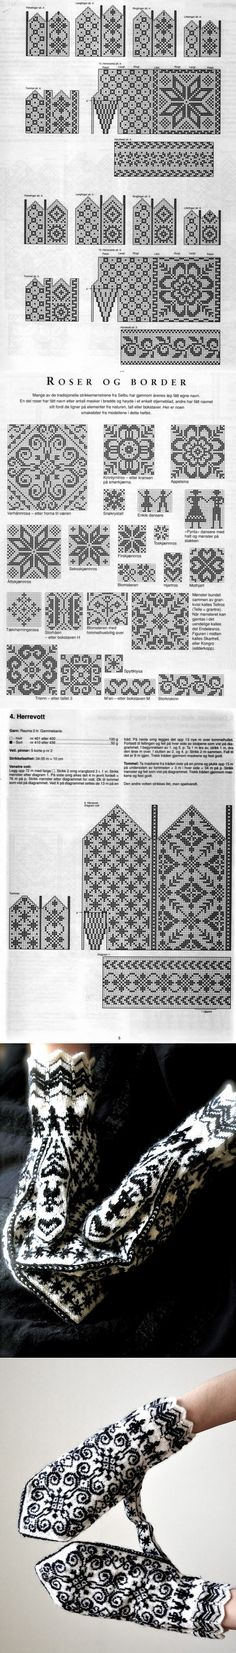 The traditions of knitting, or the story of the famous patterned mittens Fair Isle Knitting, Knit Mittens, Knit Crochet, Knitting Patterns, Diy And Crafts, Gloves, Cross Stitch, Tapestry, Inspiration